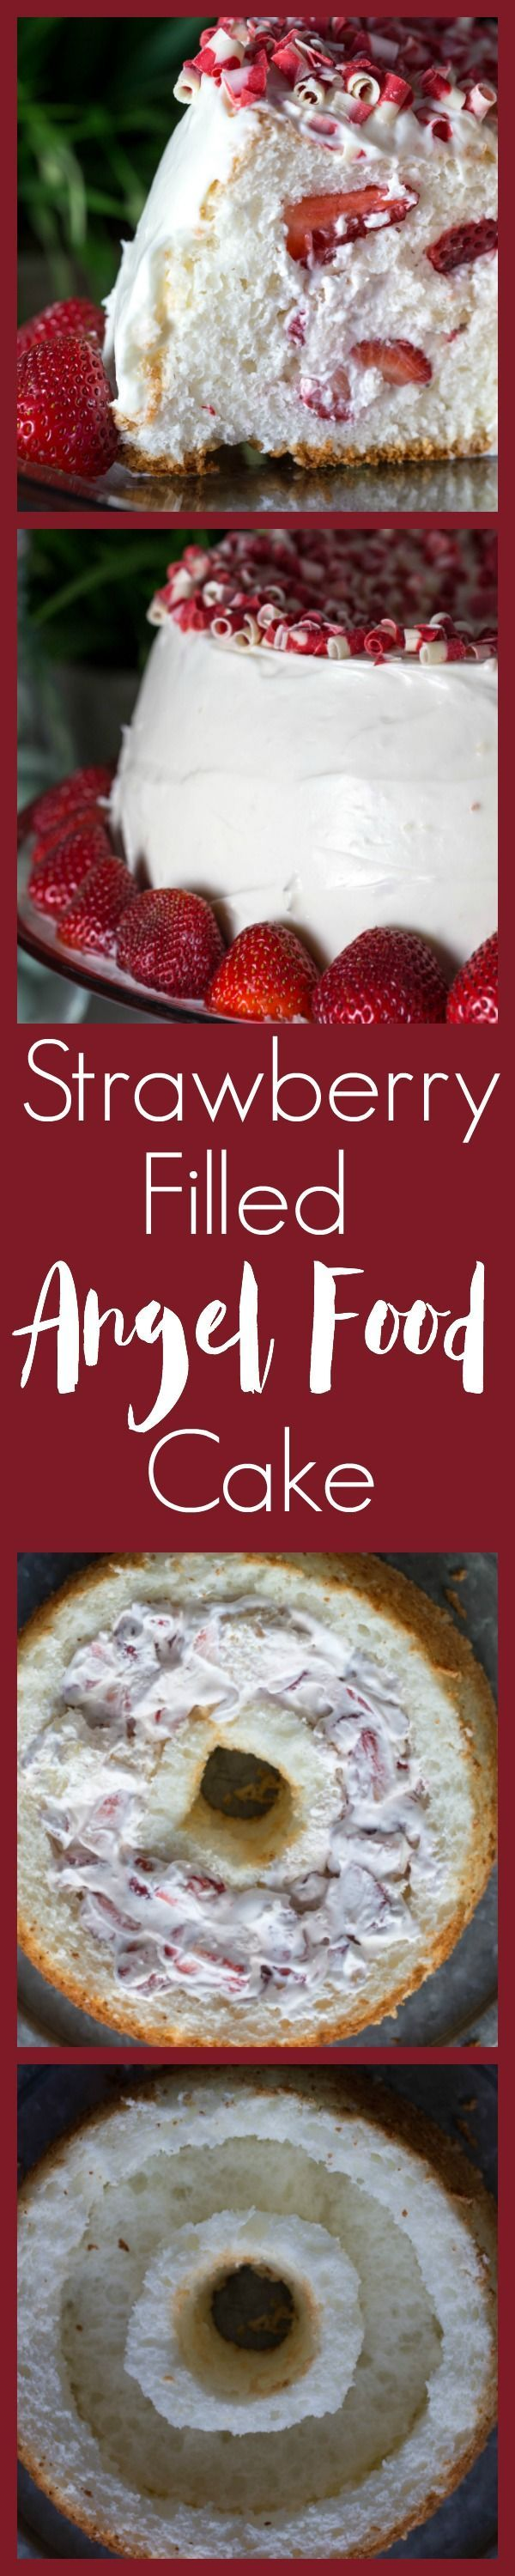 Strawberry Filled Angel Food Cake ~ Fluffy Angel Food Cake stuffed with strawberries and whipped cream. Frosted with a cream cheese frosting... This recipe shows you exactly how to stuff this cake. So easy but so impressive. People will want to know how you did it.